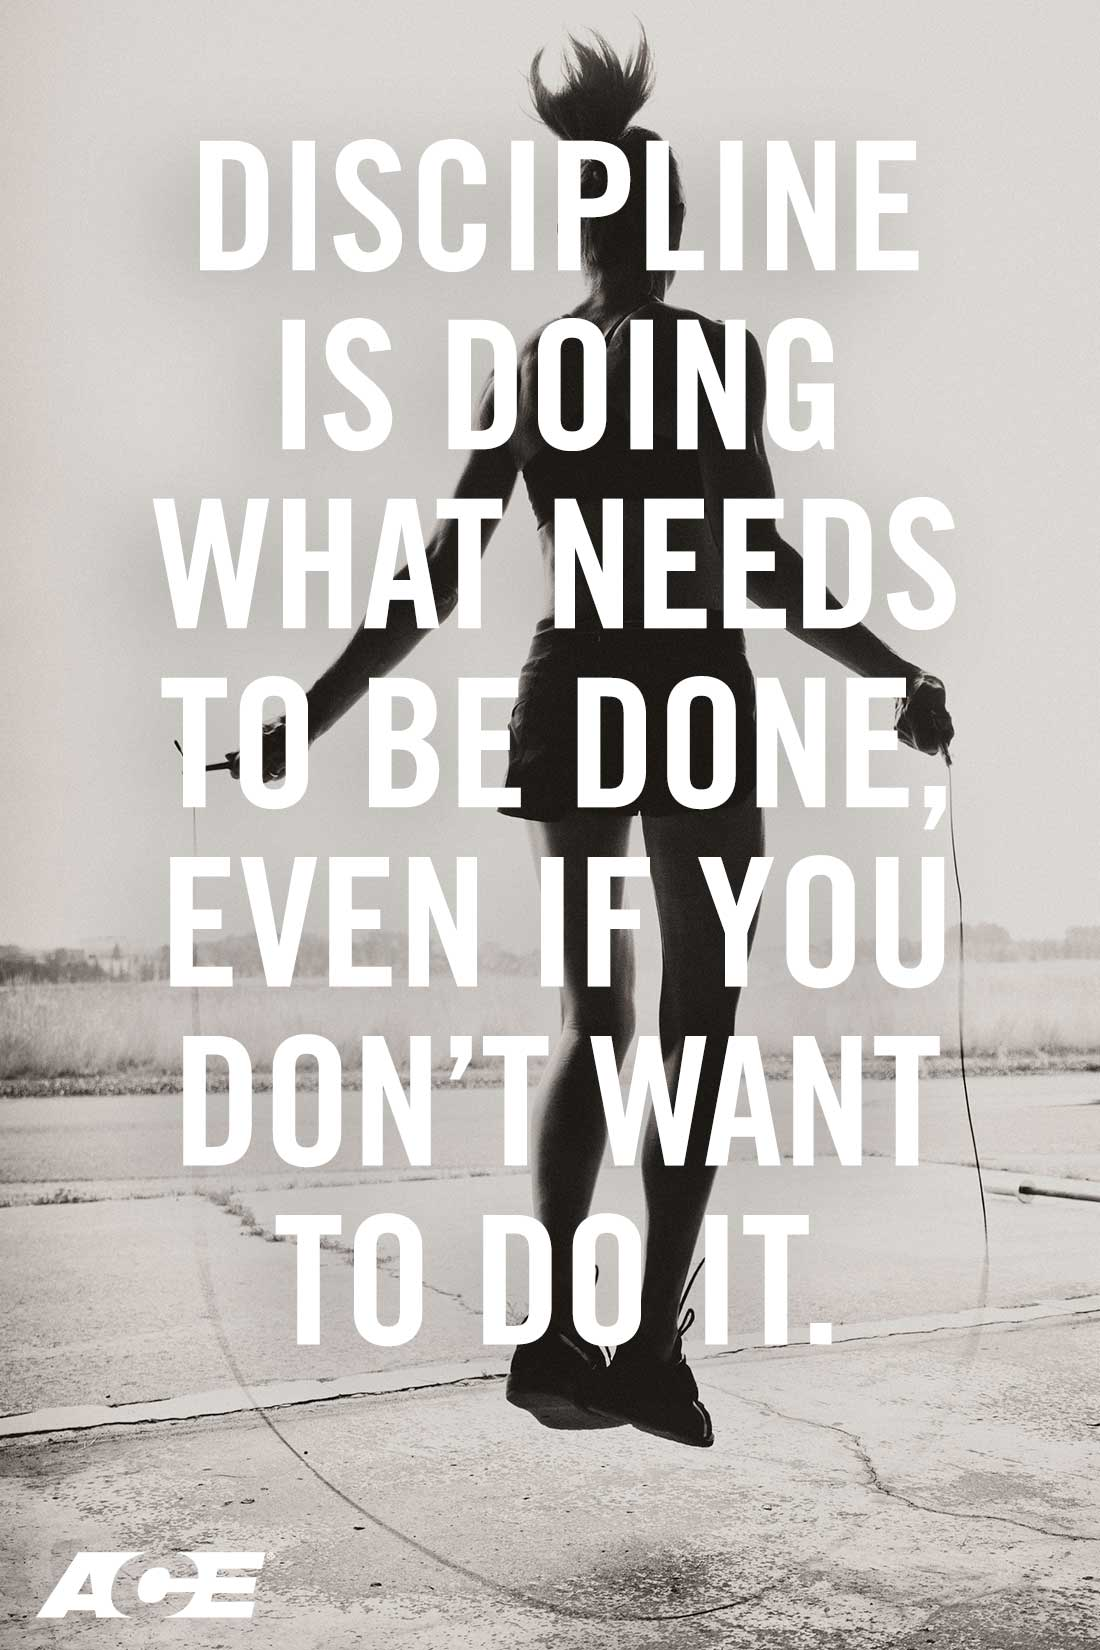 Fitness Quotes 12 Inspiring Health And Fitness Quotes To Get You Moving